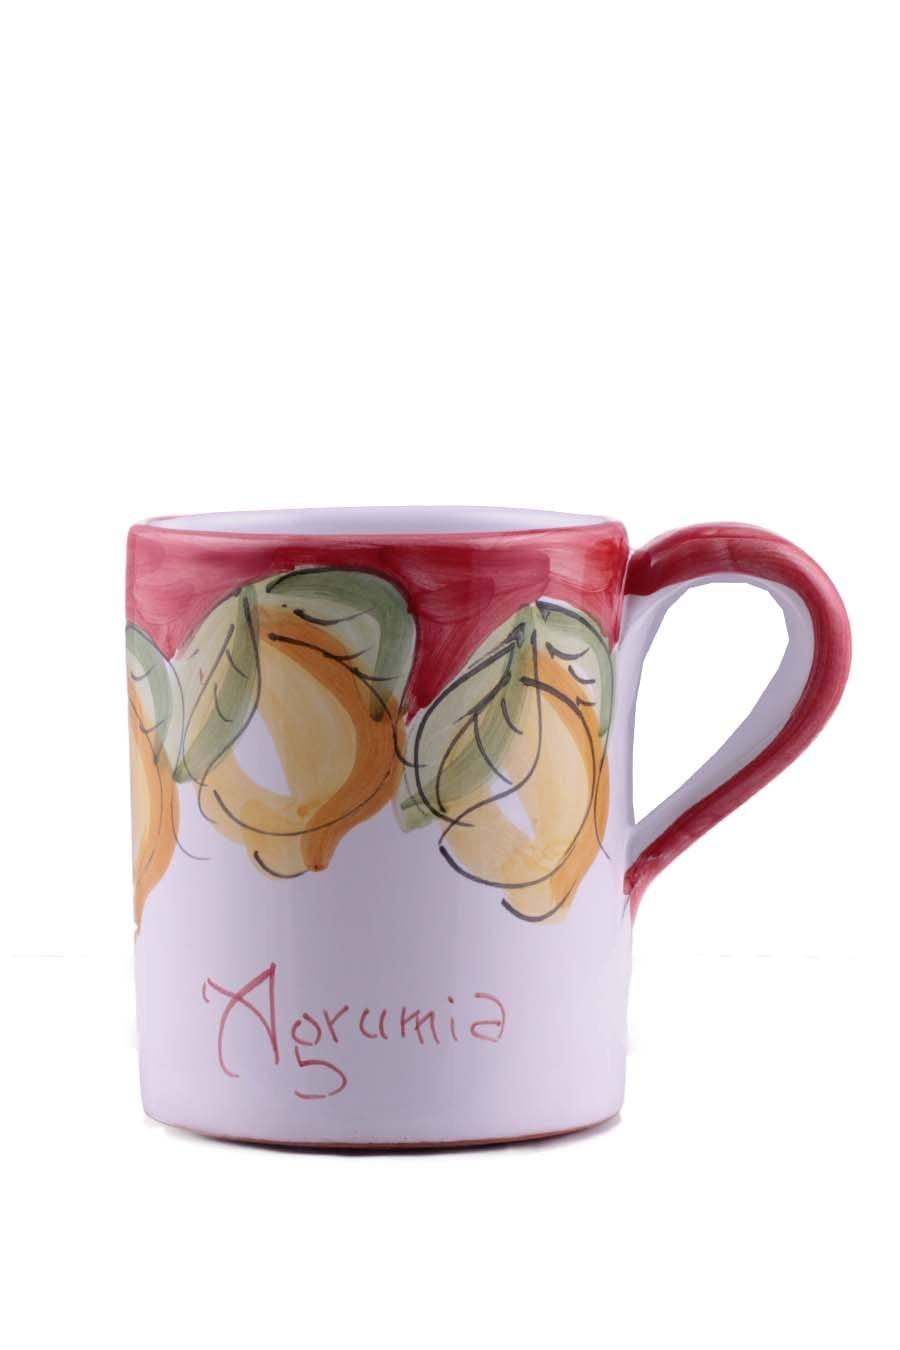 Agrumia Handmade Ceramic Coffee Mug